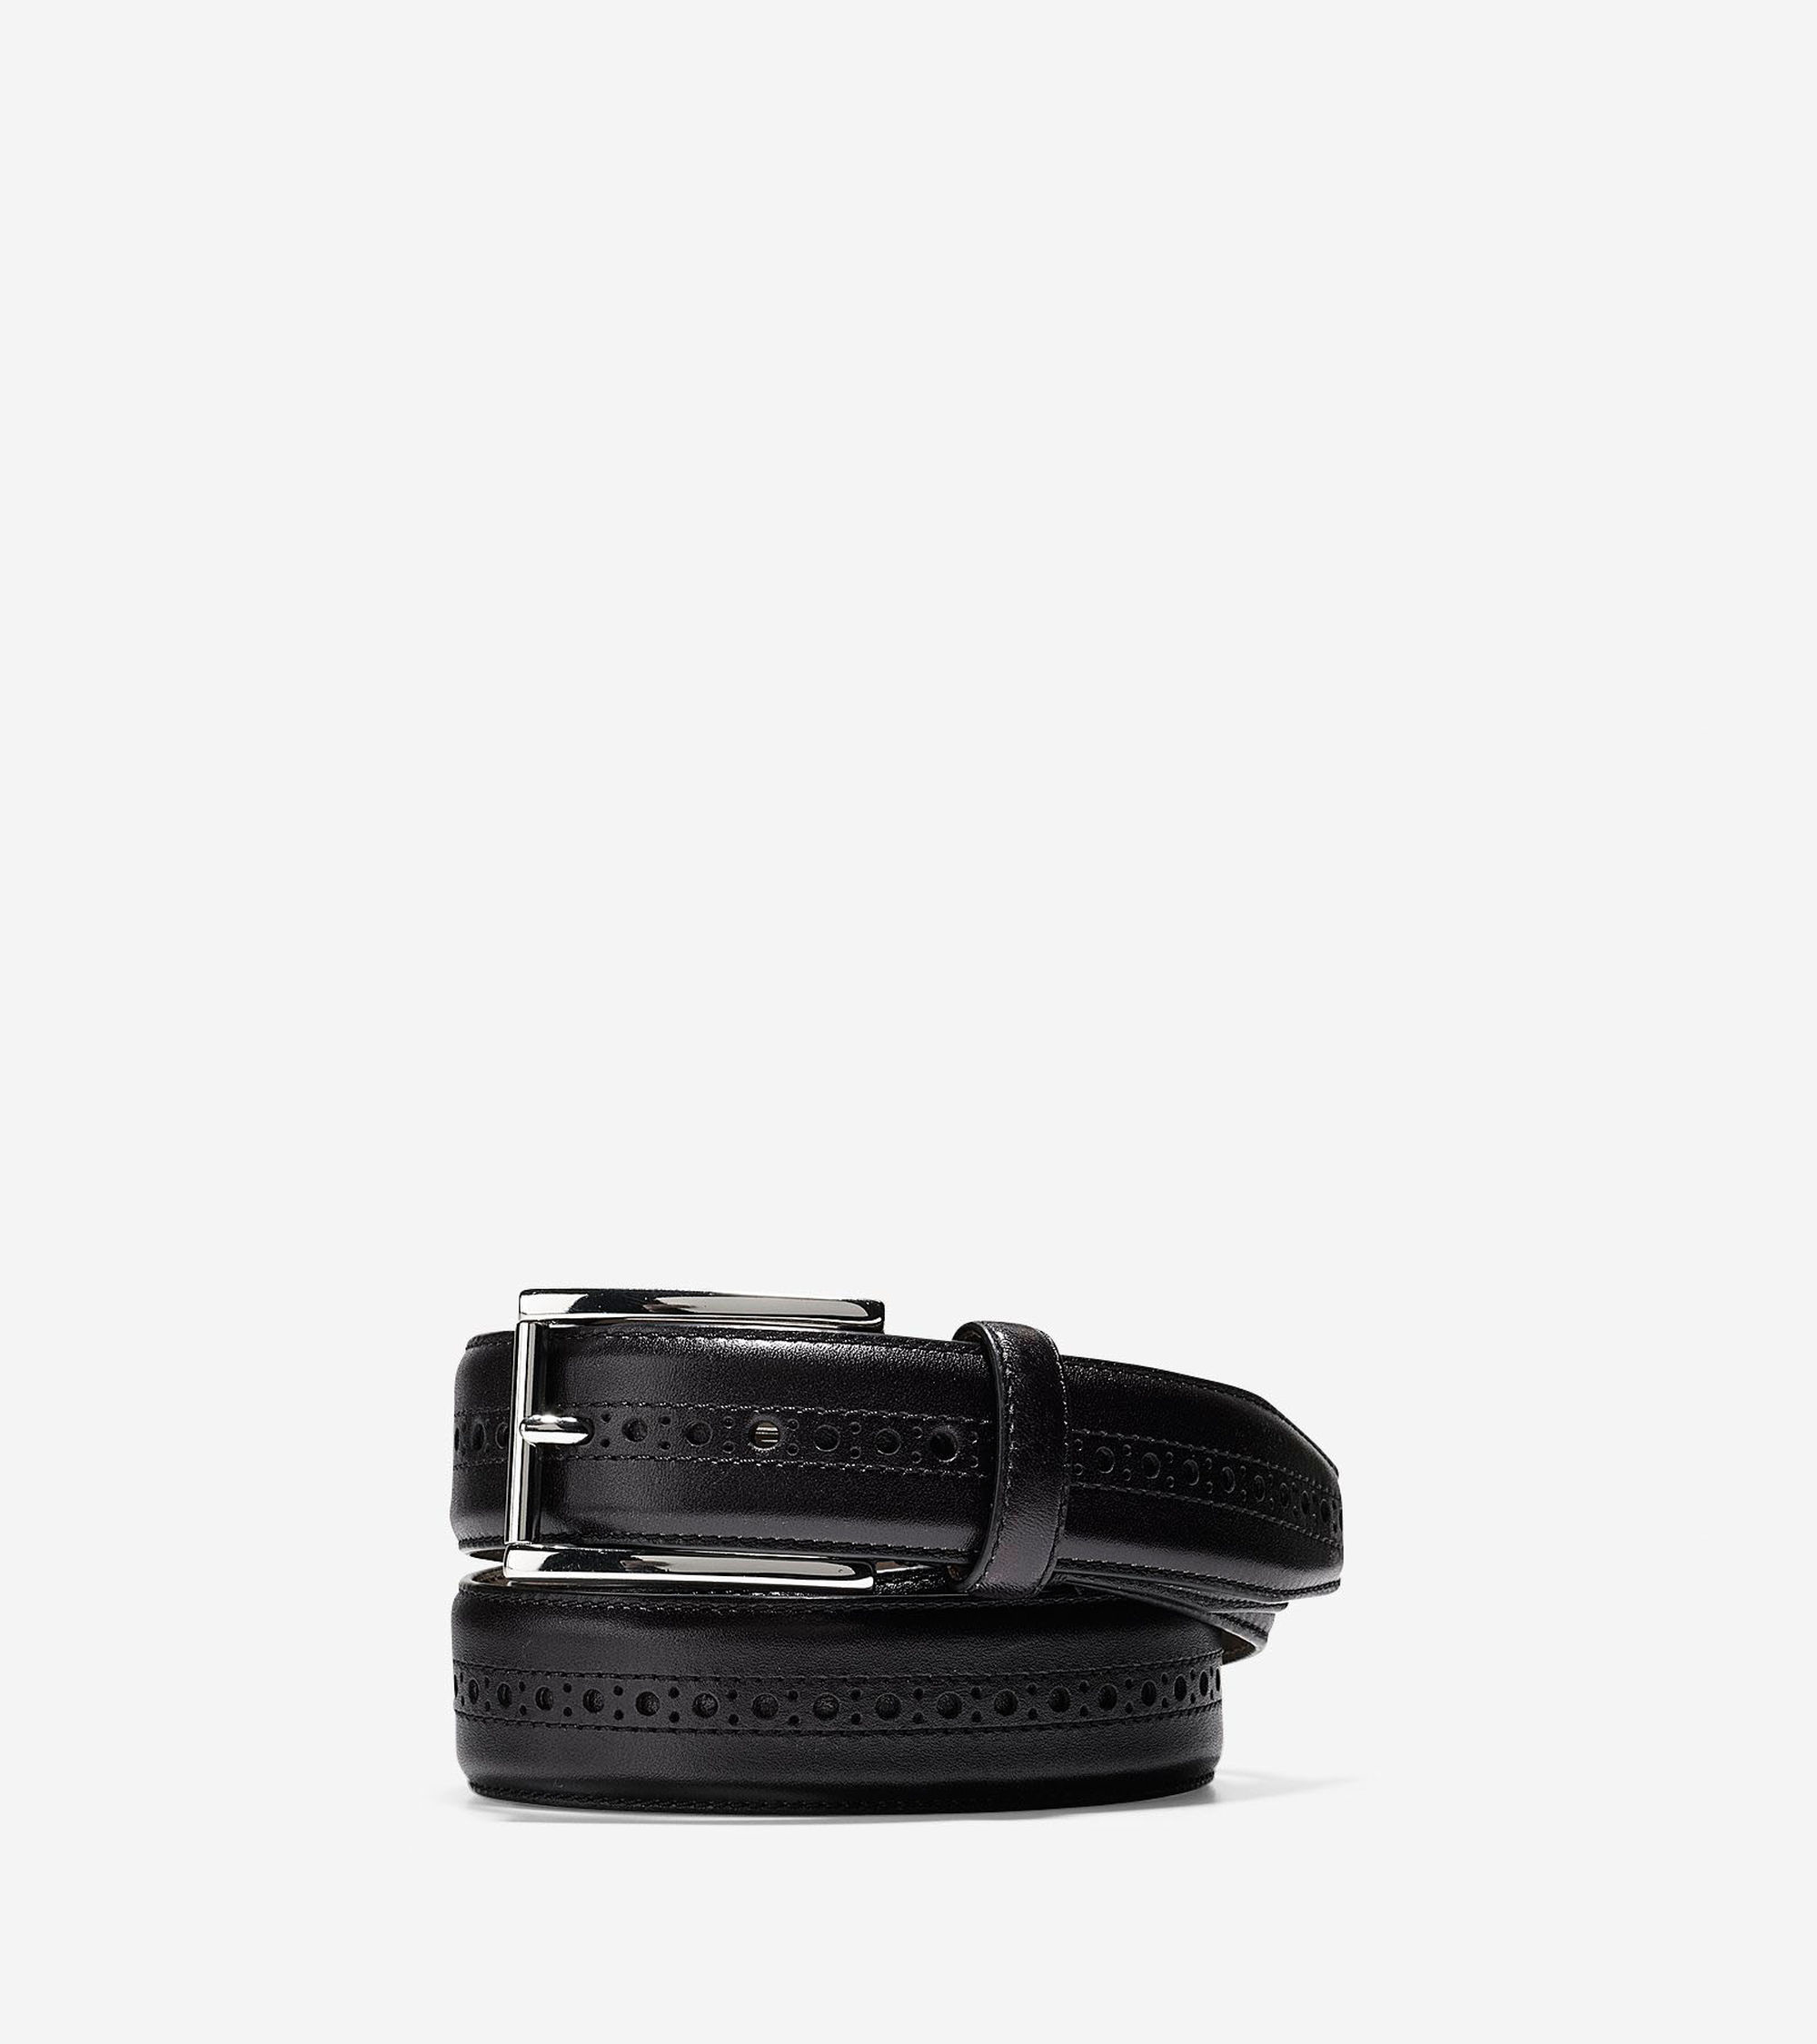 Cole haan Hamilton Grand 32mm Brogued Belt in Black for ...